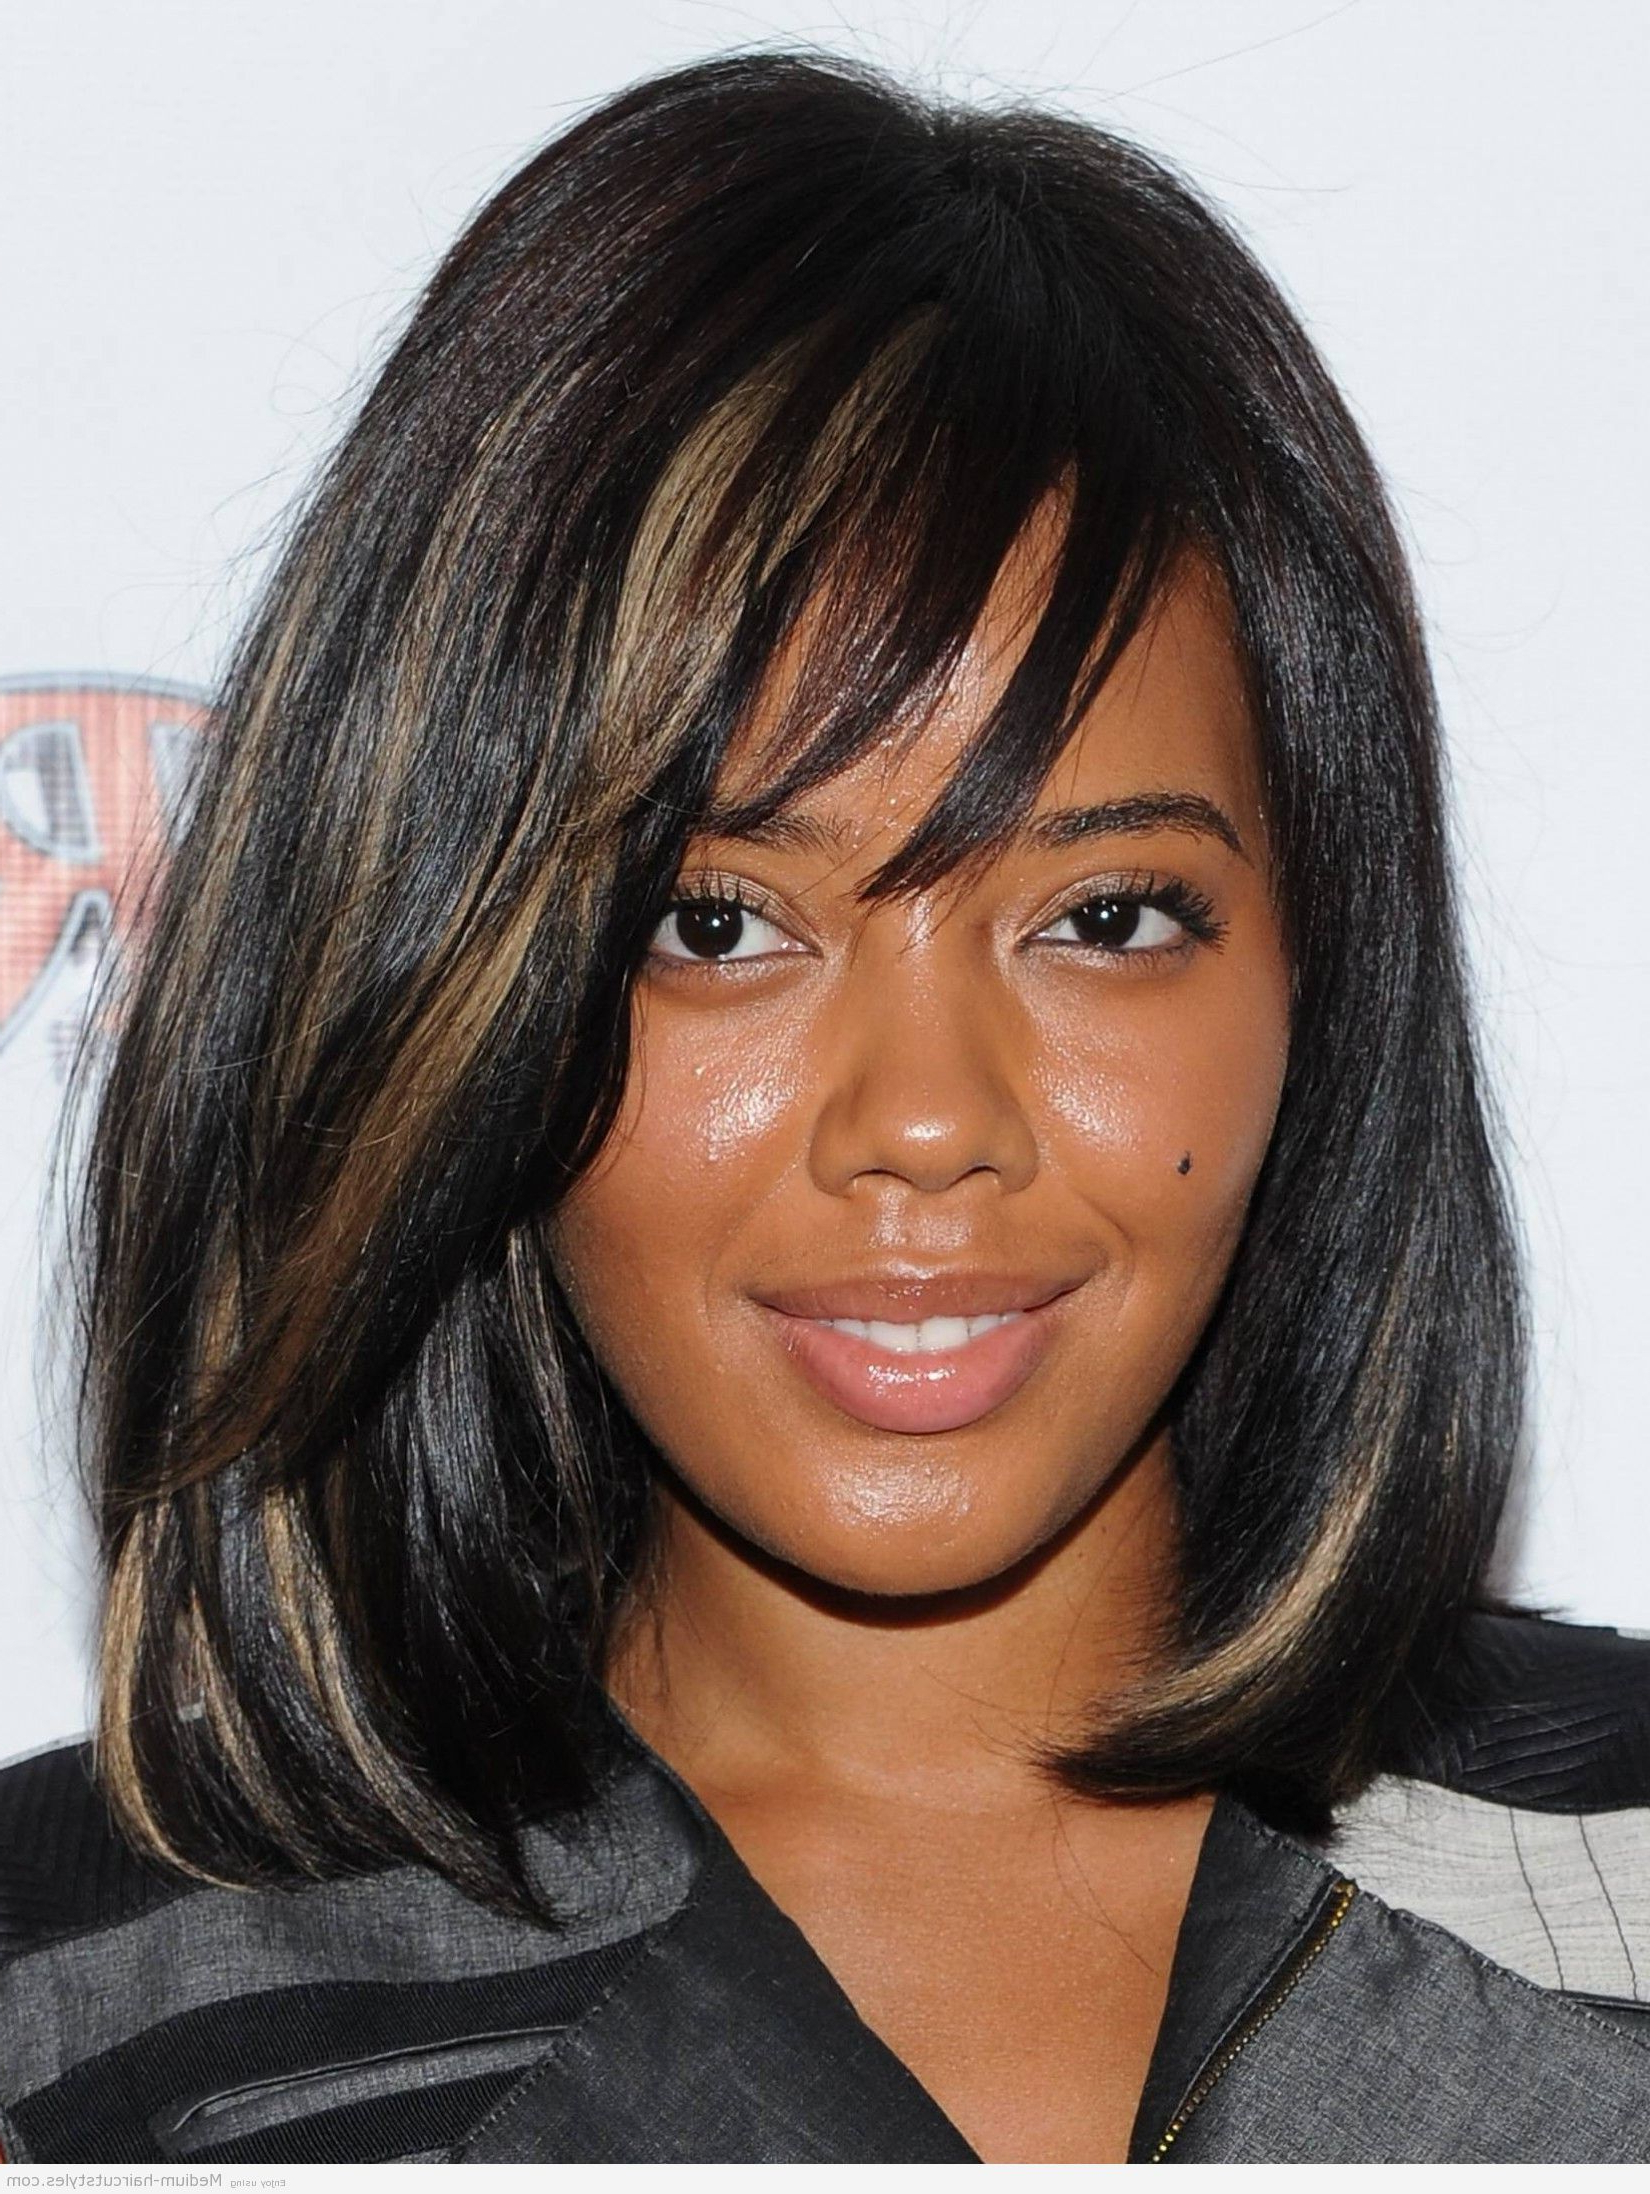 Black Archives   Hottest Layered Hairstyles 2018 With Short Layered Hairstyles For Black Women (View 12 of 25)